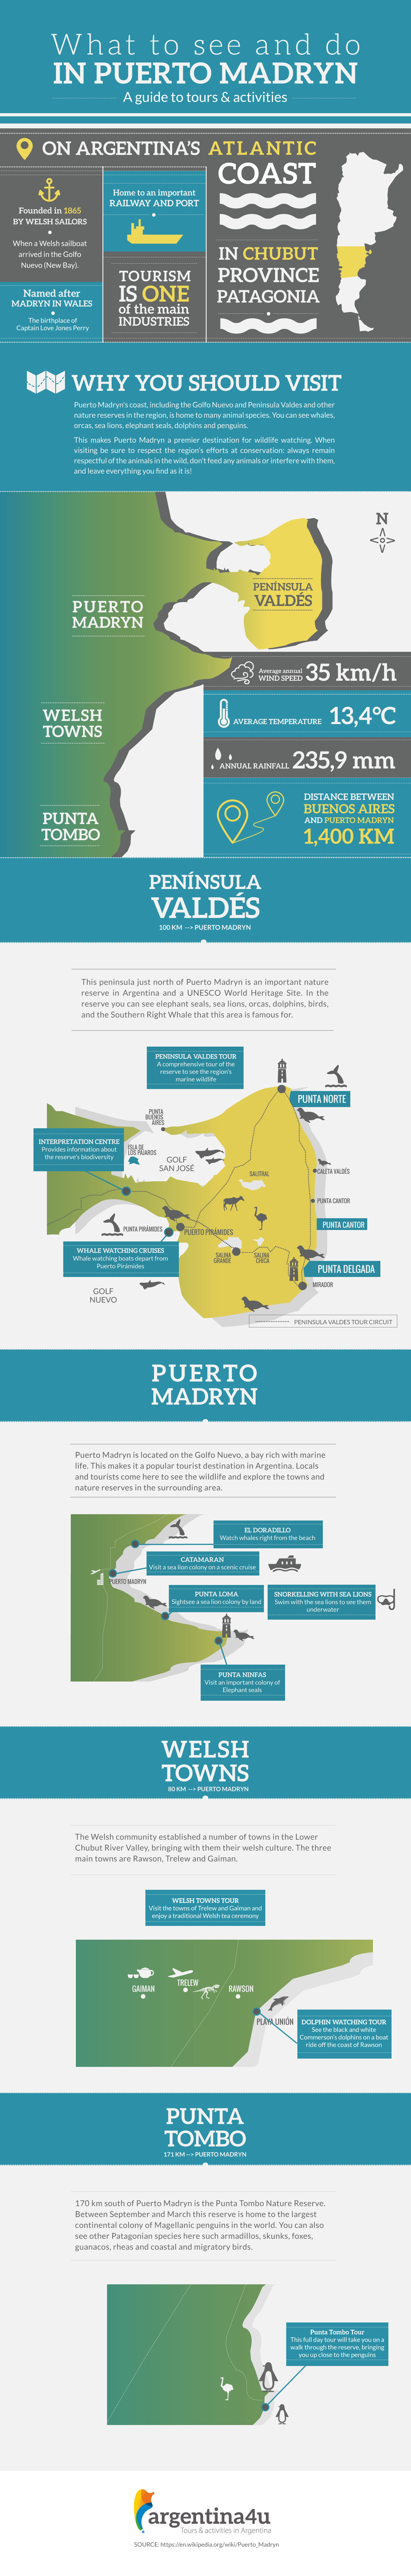 Things to do in Puerto Madryn - Infographic